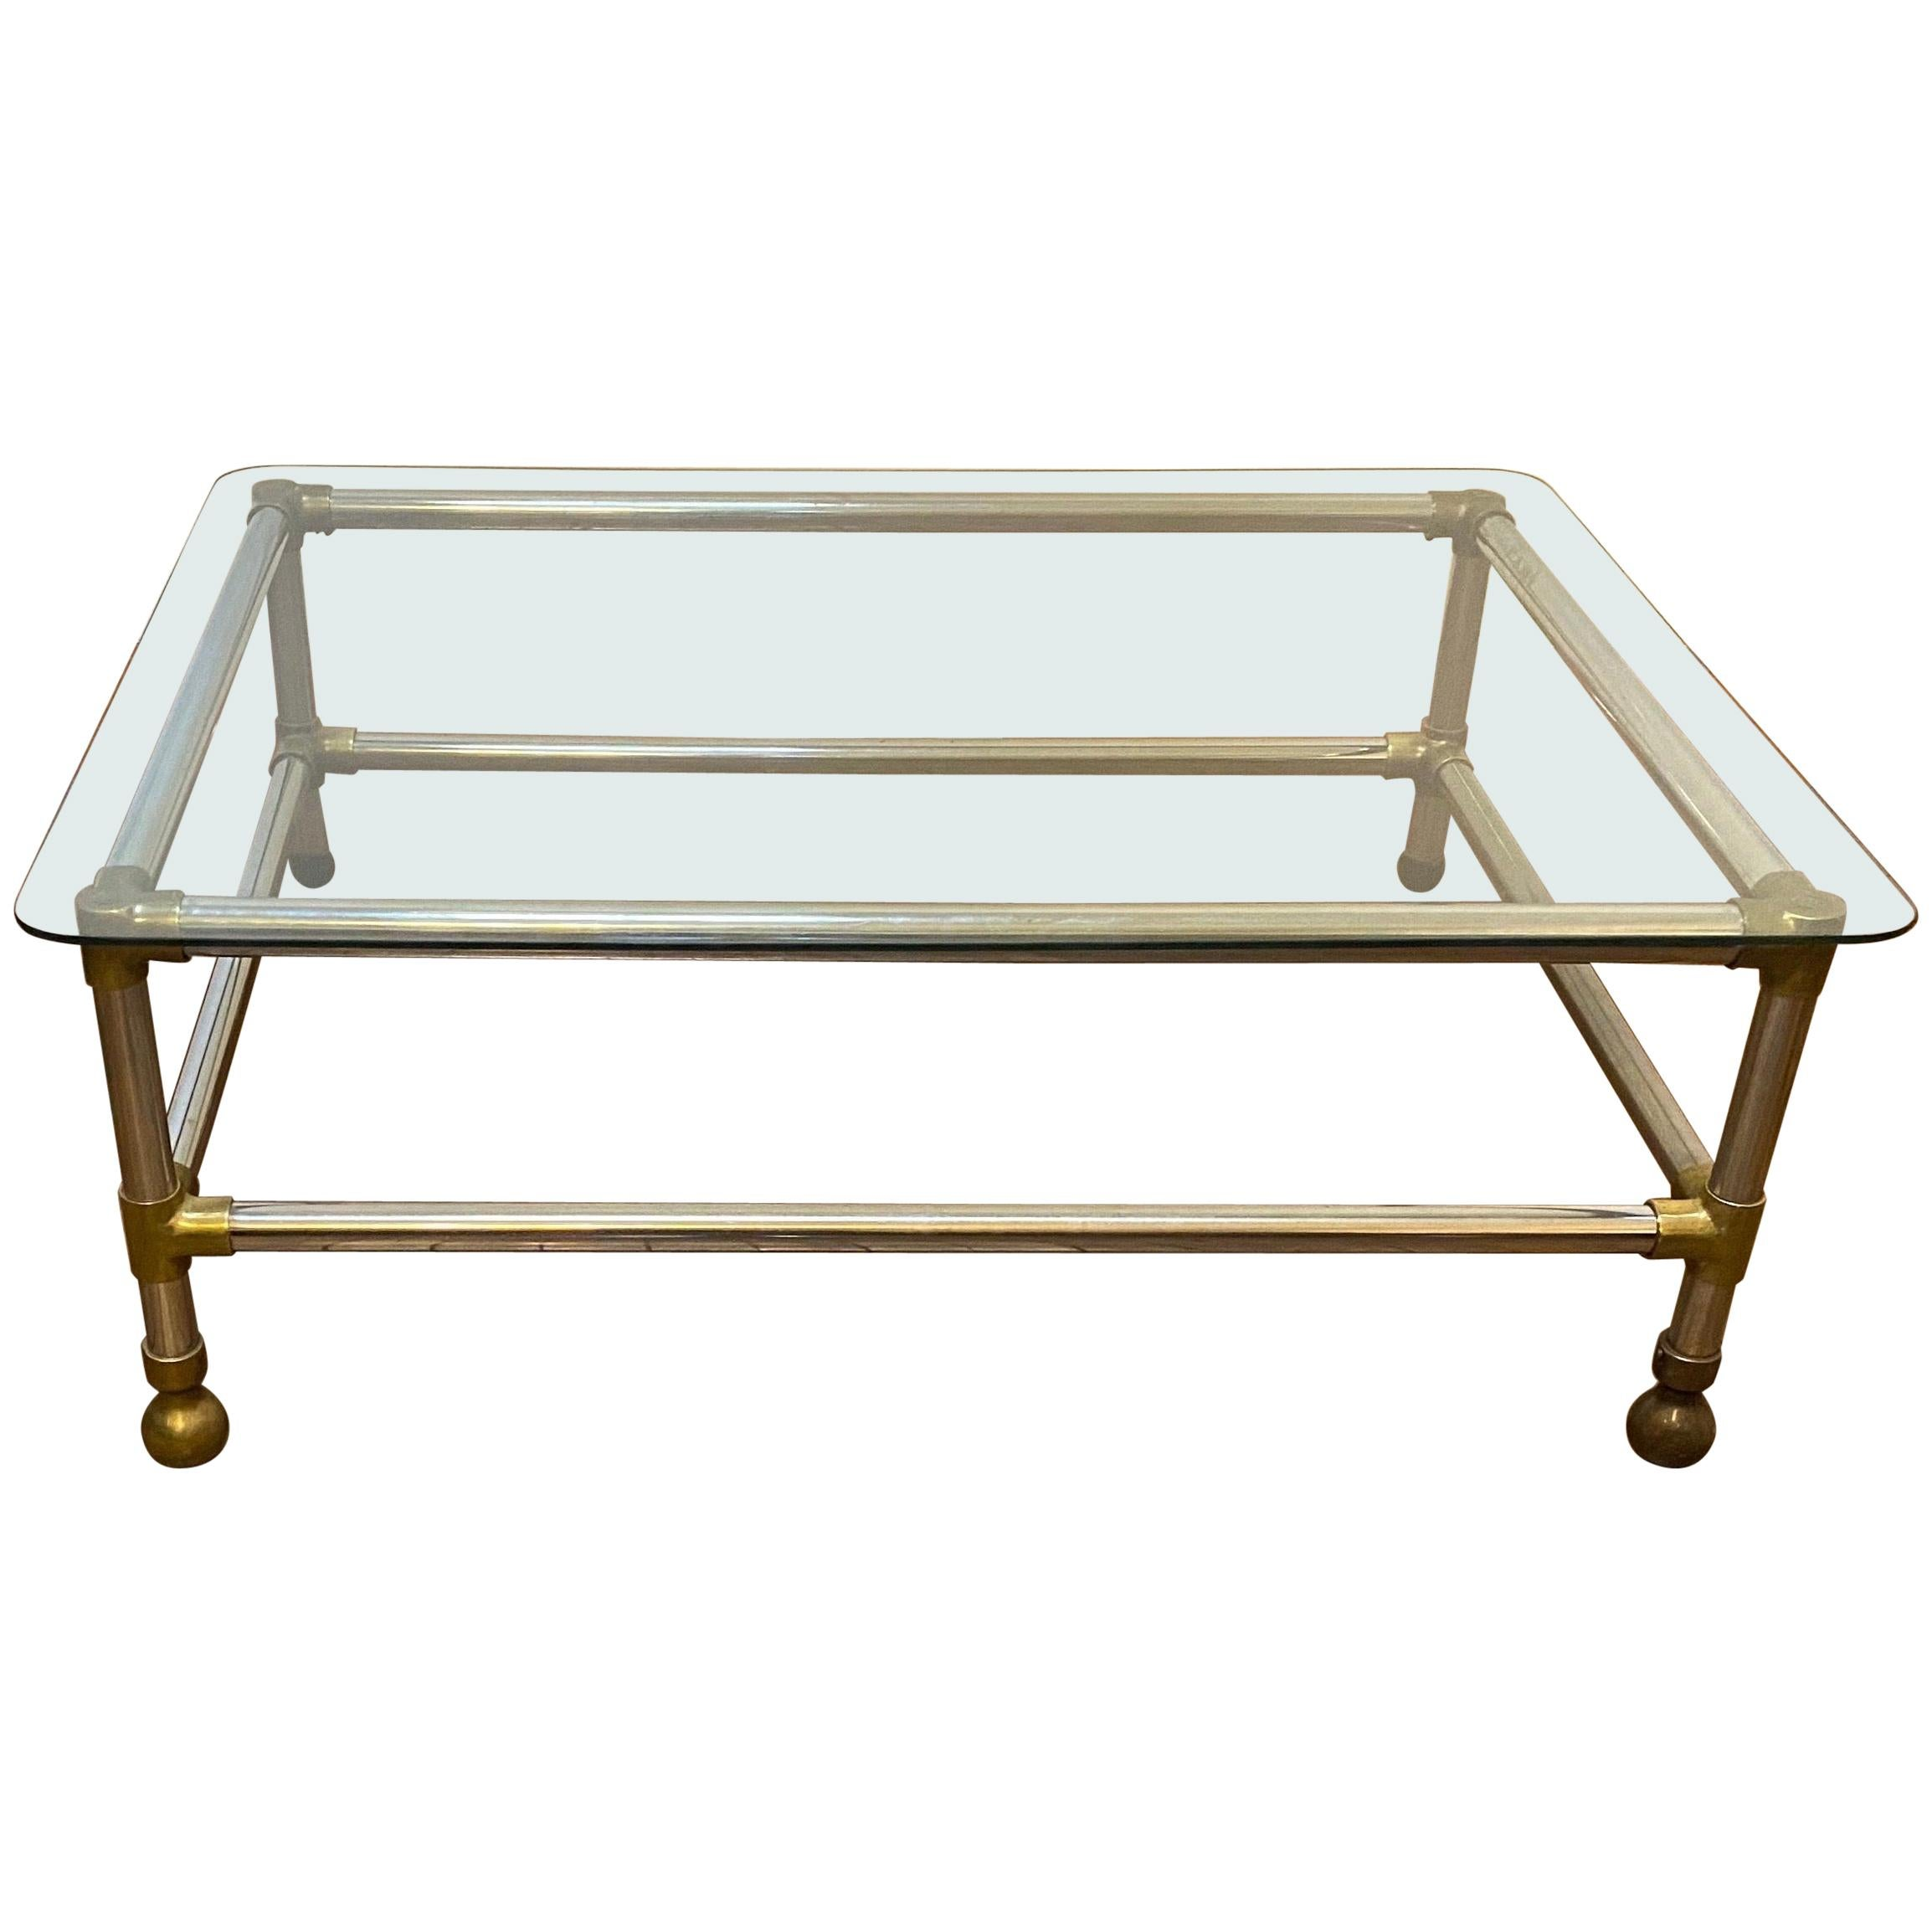 Midcentury/Modern Aluminum, Brass and Glass Coffee Table